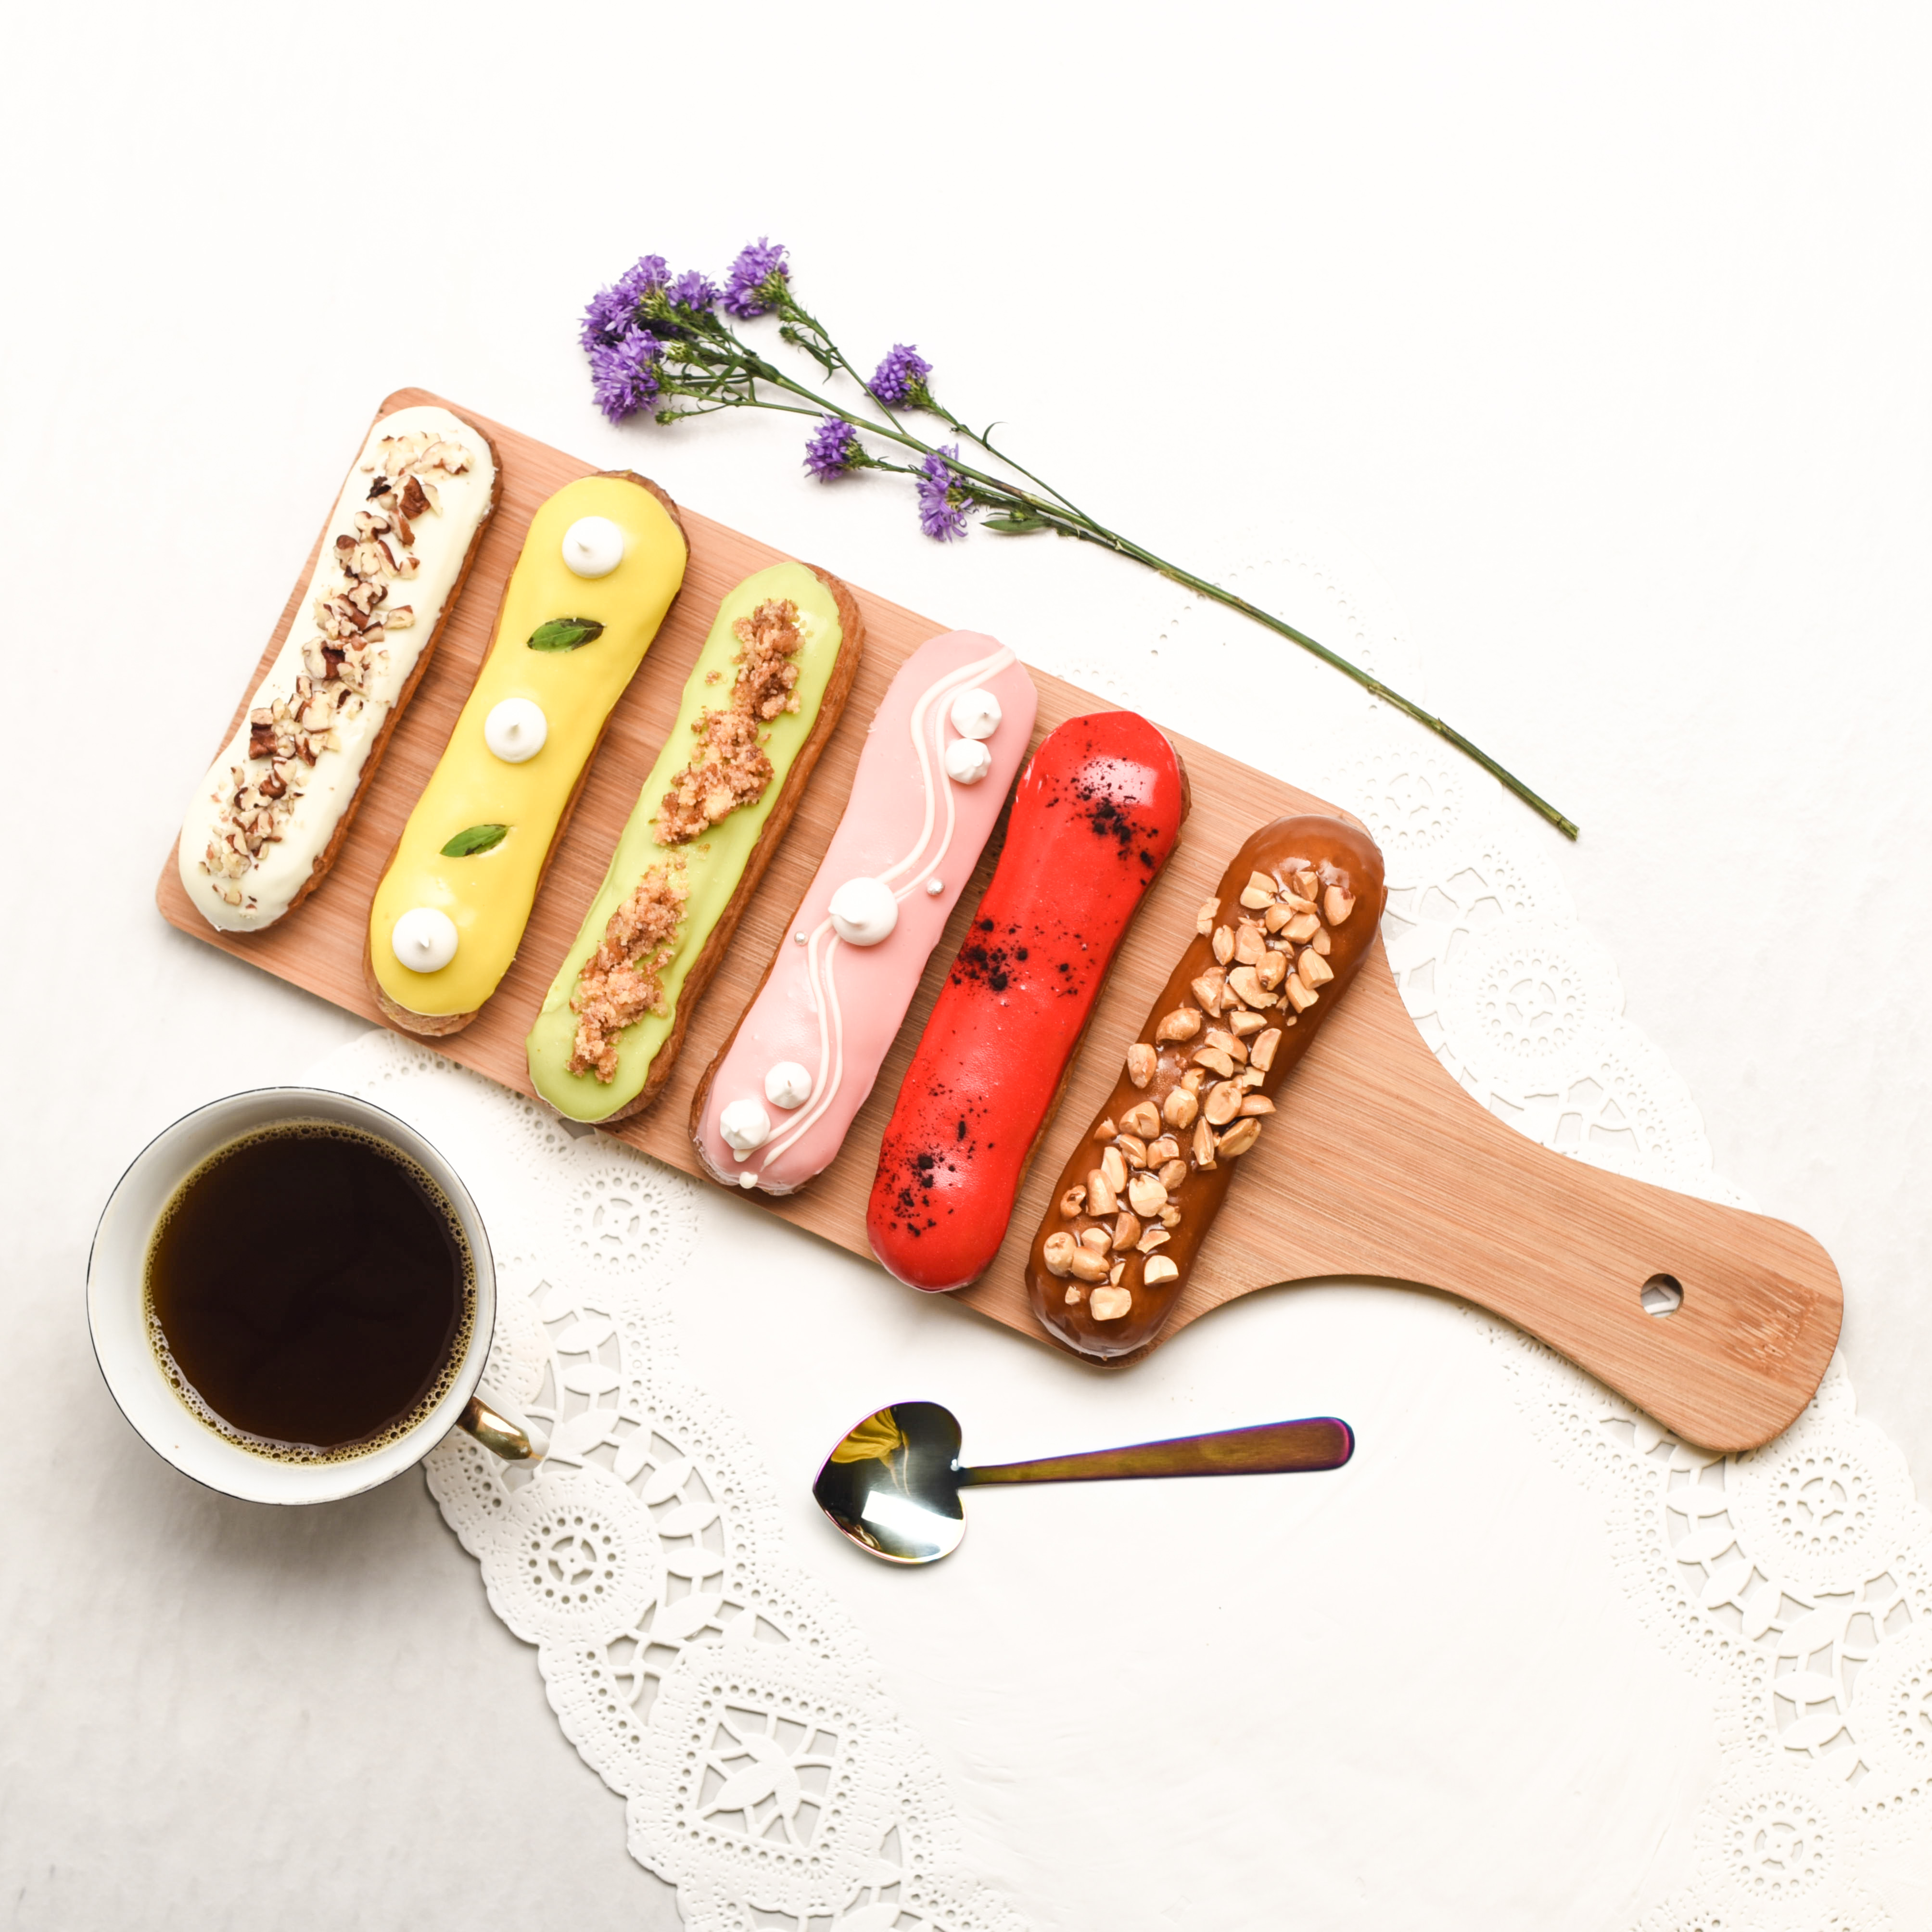 Masterclass On French Eclairs At Foodhall By L'Eclair Studio